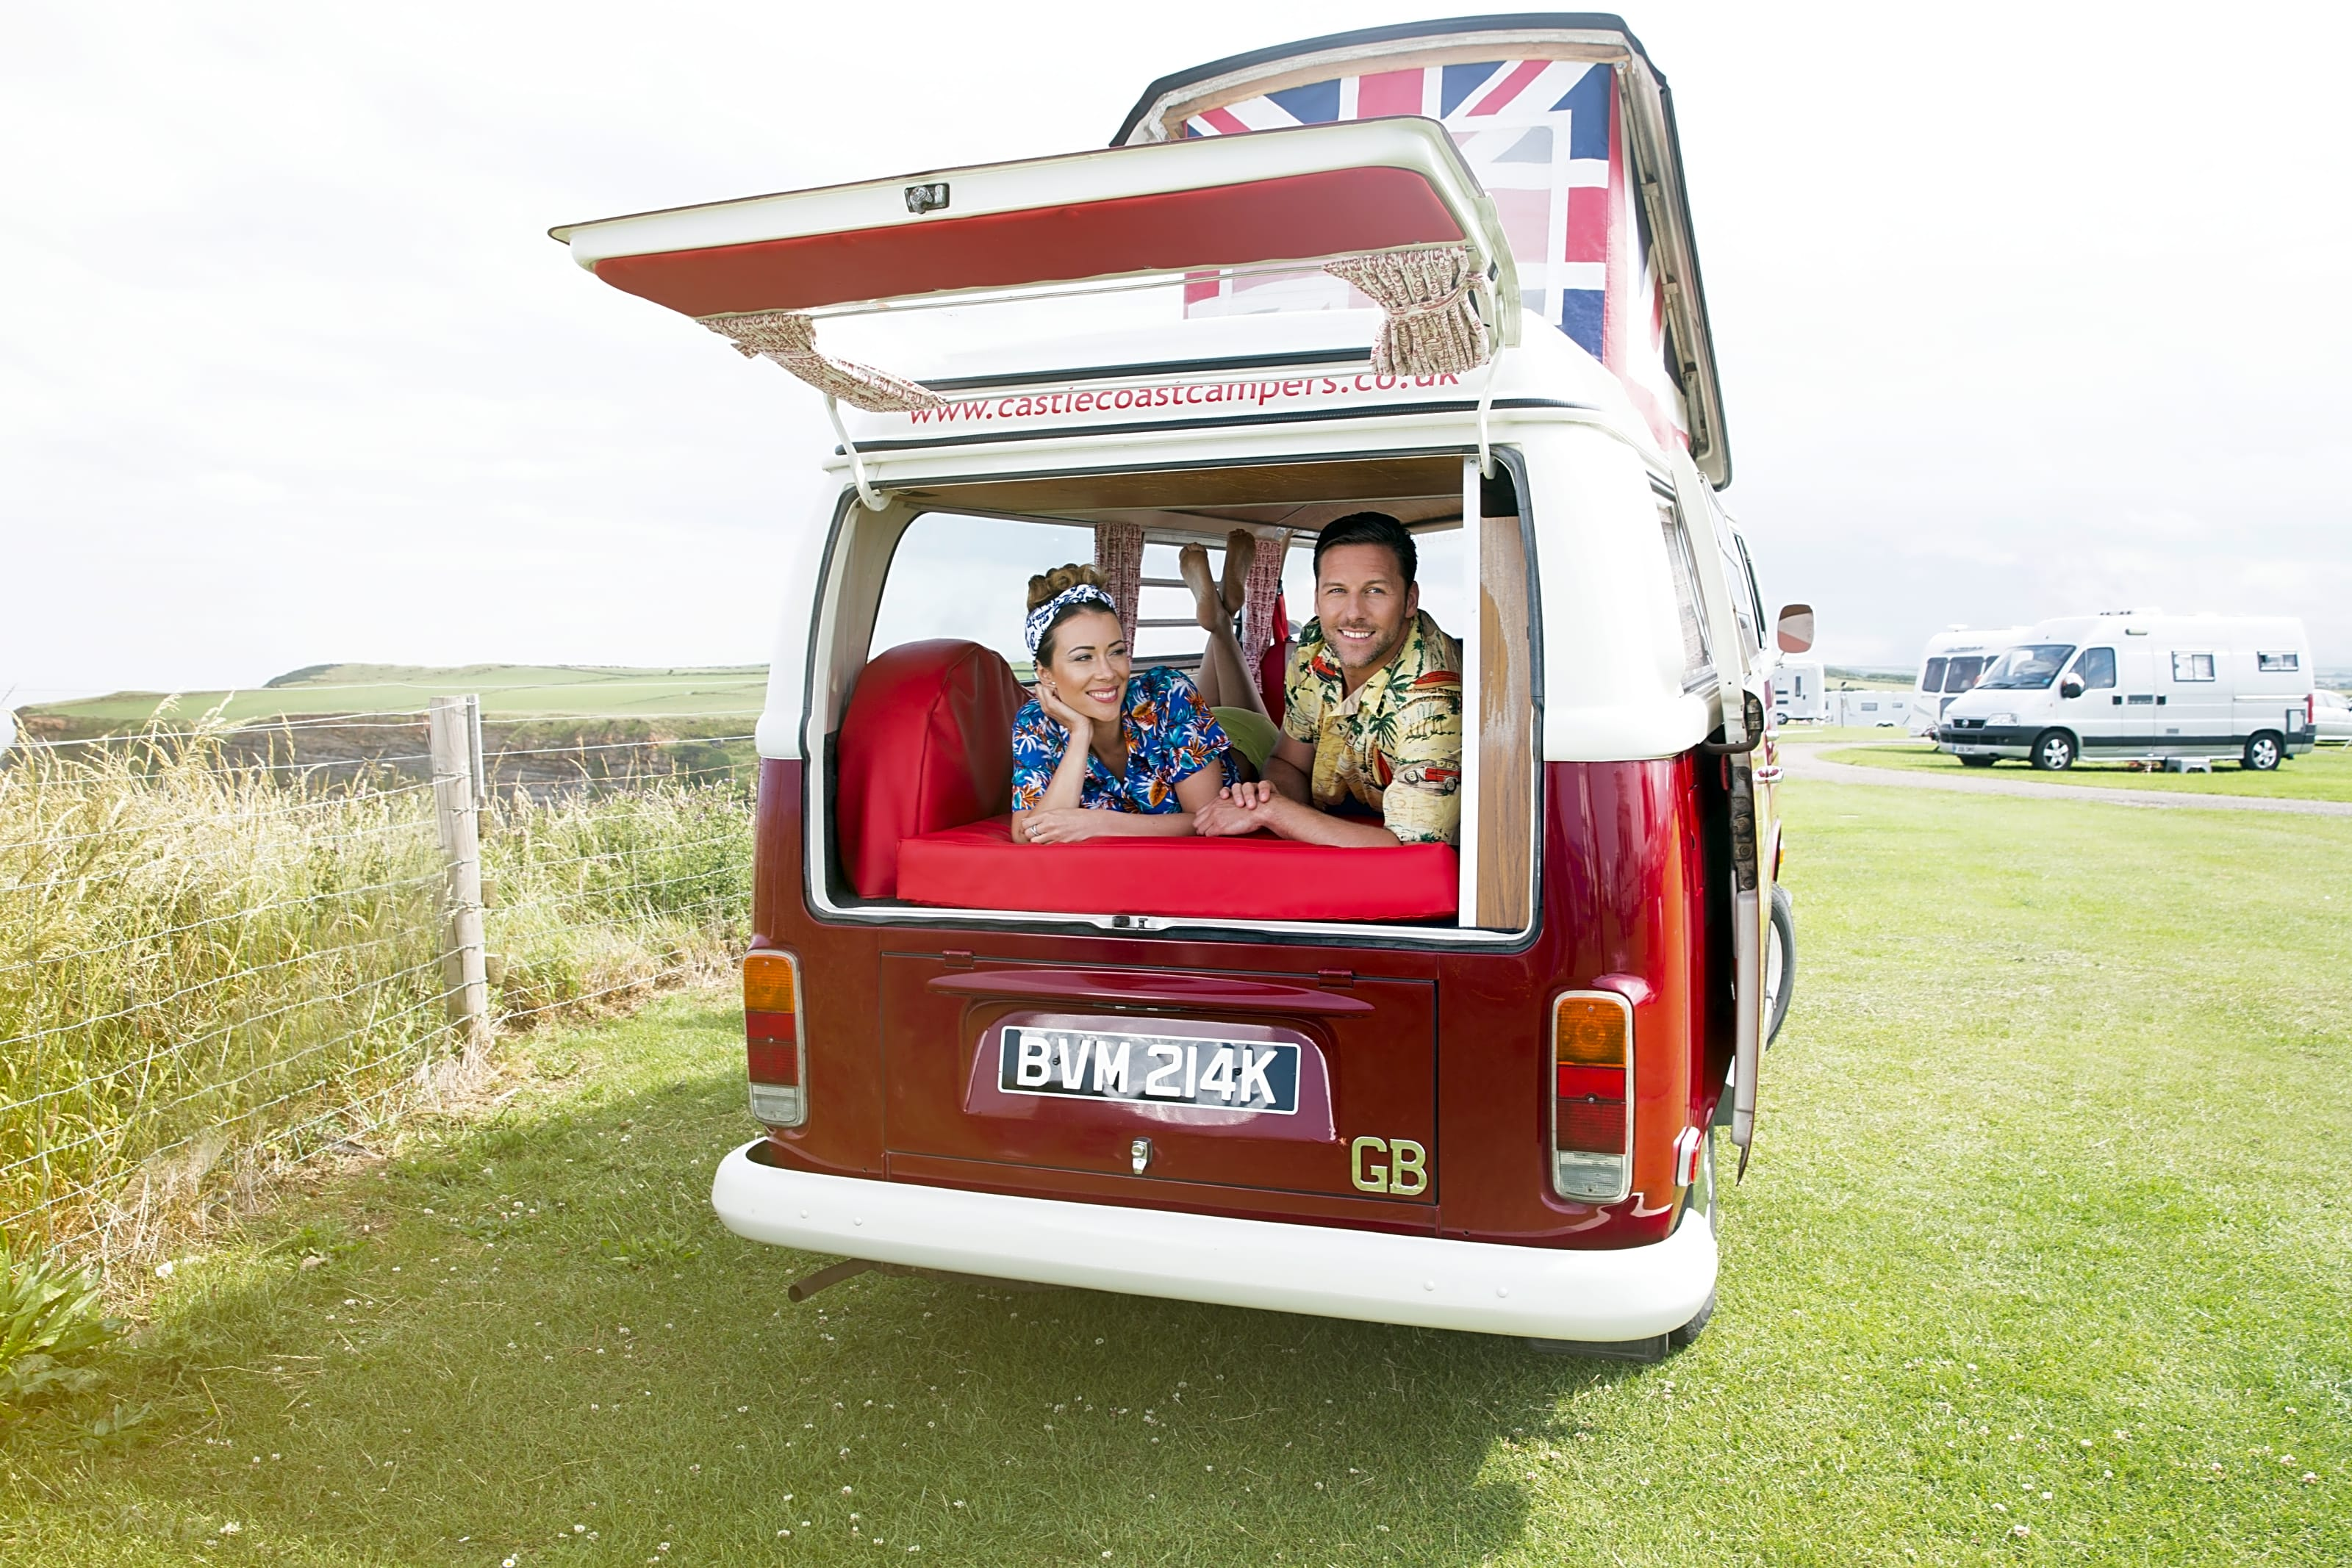 Whitby Holiday Park, Whitby - Updated 2019 prices - Pitchup®